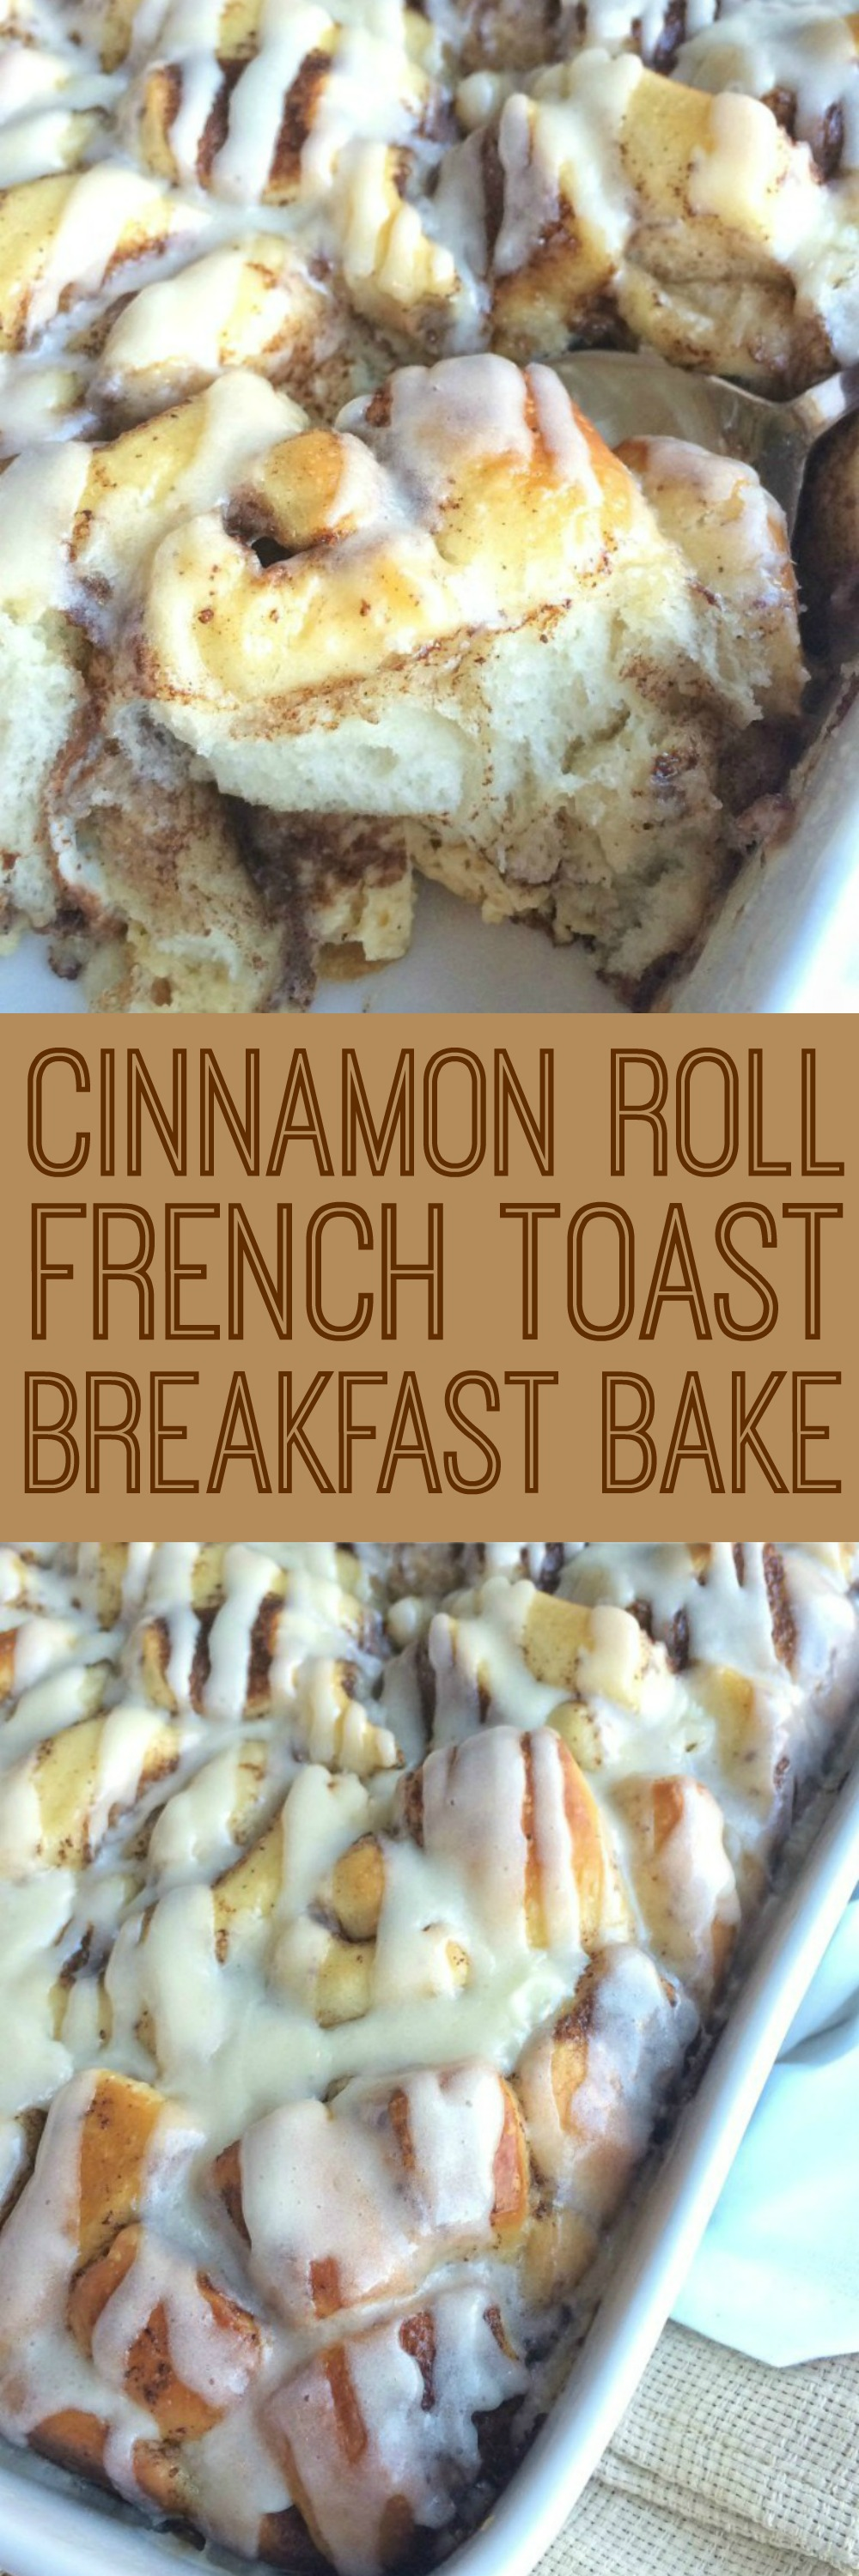 Easy, Frozen Cinnamon Rolls Soaked In A Milk & Egg Mixture Overnight Bake  It